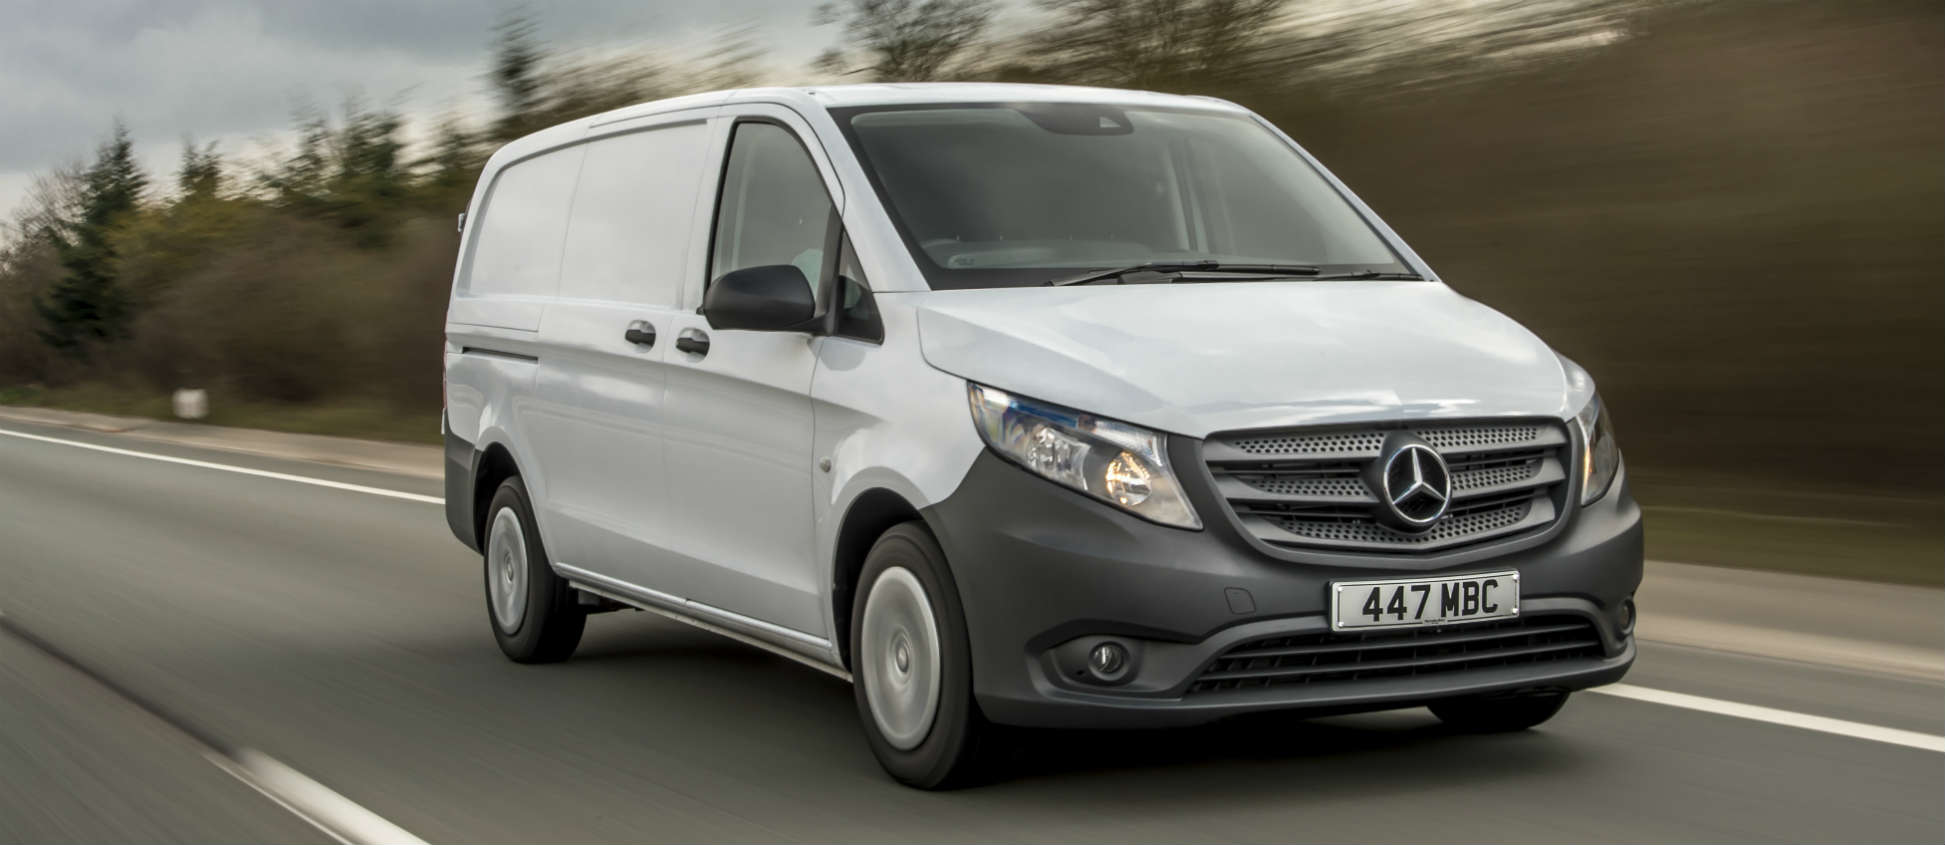 Mercedes benz vans introduces scrappage programme for new for Mercedes benz work vans